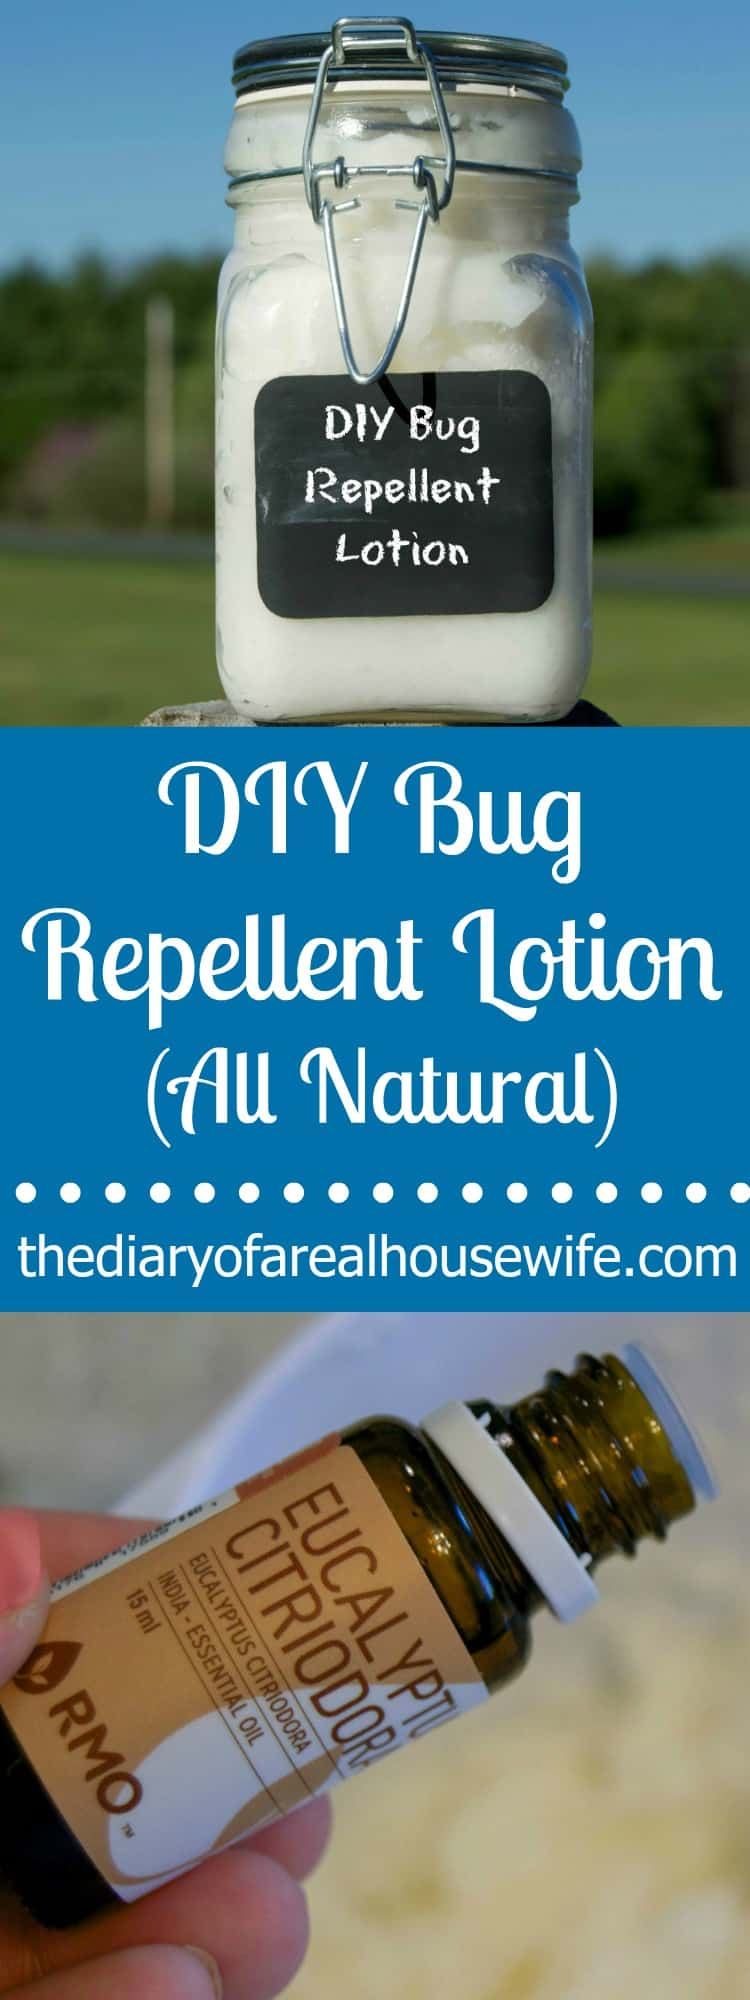 all natural insect repellant the study Natural insect pest control for the home: safe, non-toxic methods for   commercially available, garlic-based, all natural mosquito repellent and larvae  killer  for a look at the latest scientific research into mosquito controls, both  natural and.